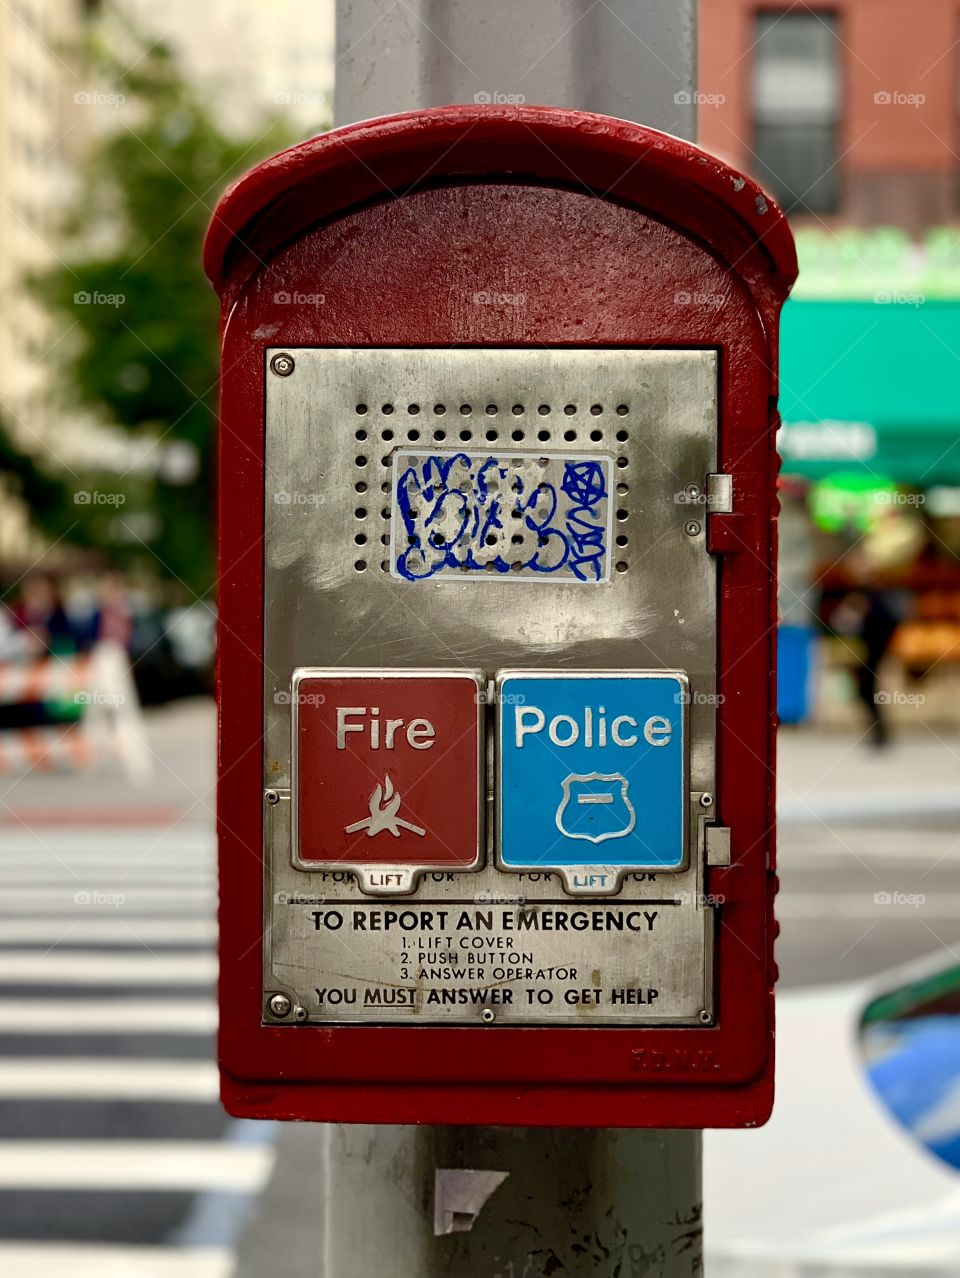 These Fire and Police call stations are unique to New York City. They are scattered across the city adding a special look.